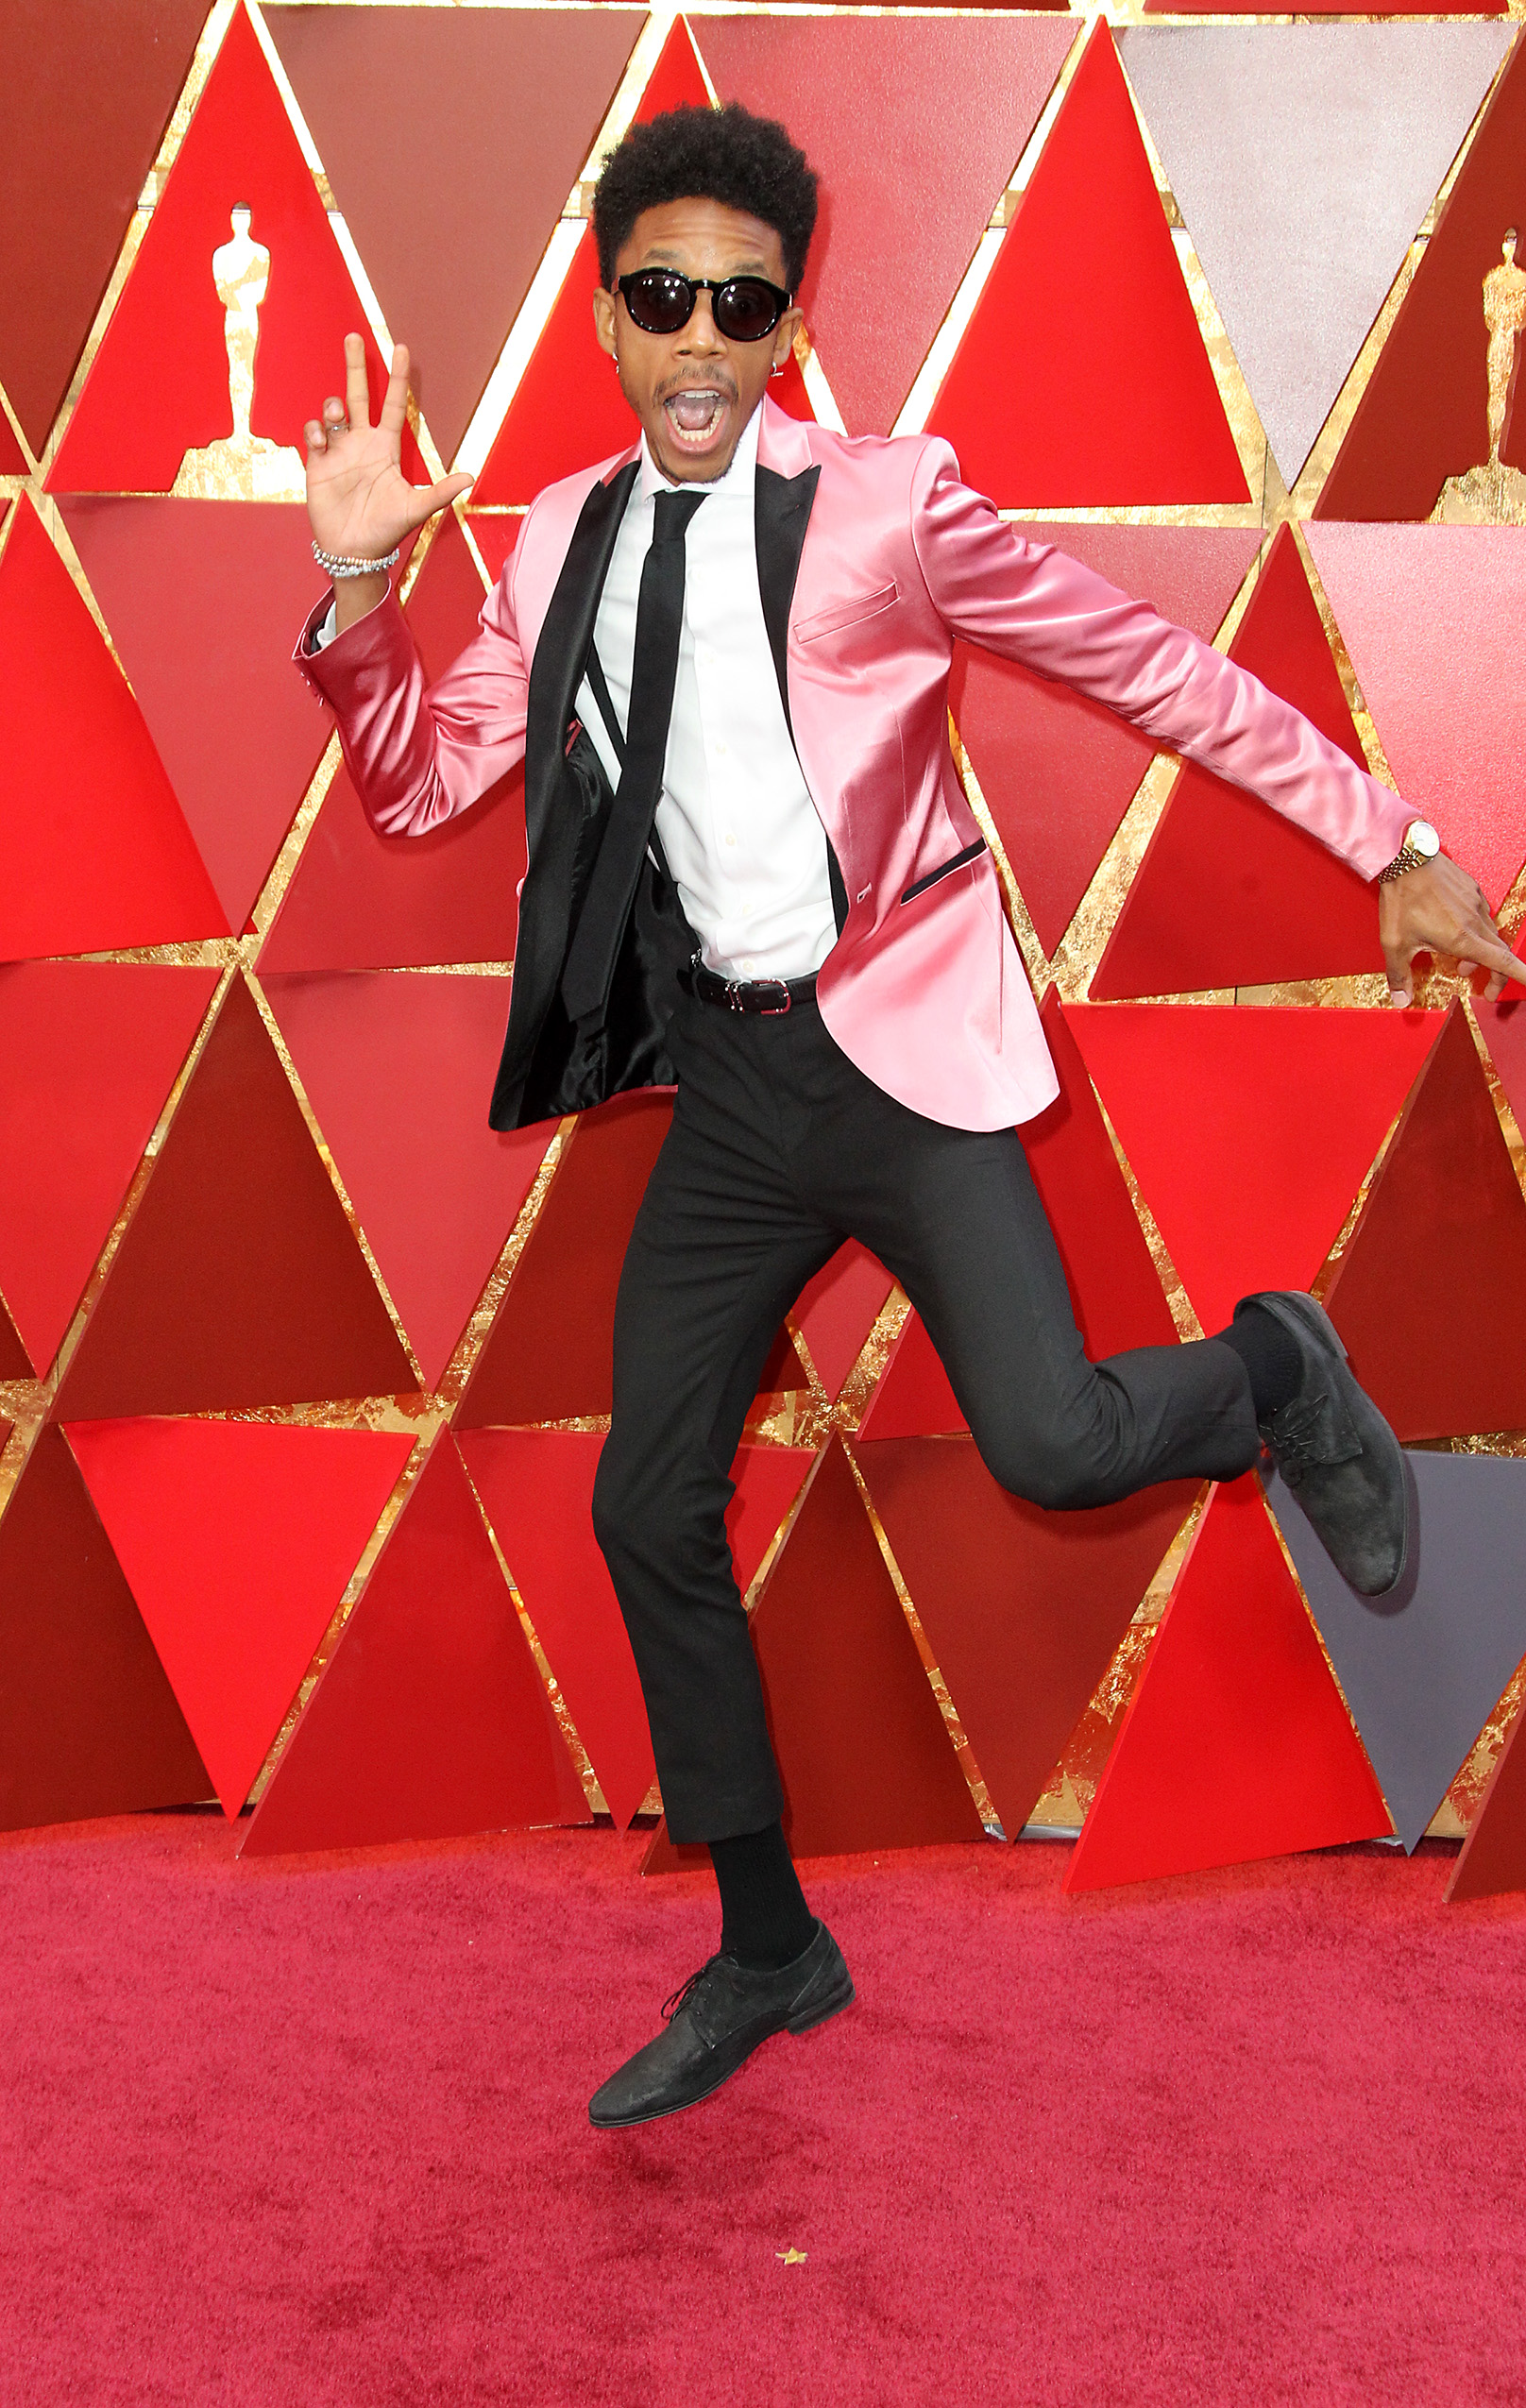 It's killing me that I can't figure out who designed this awesome look, but either way I am applauding Darrell for opting for a bright pink tux jacket and looking like he's having more fun than anyone at the Oscars. (Image: Adriana M. Barraza/WENN.com)<p></p>